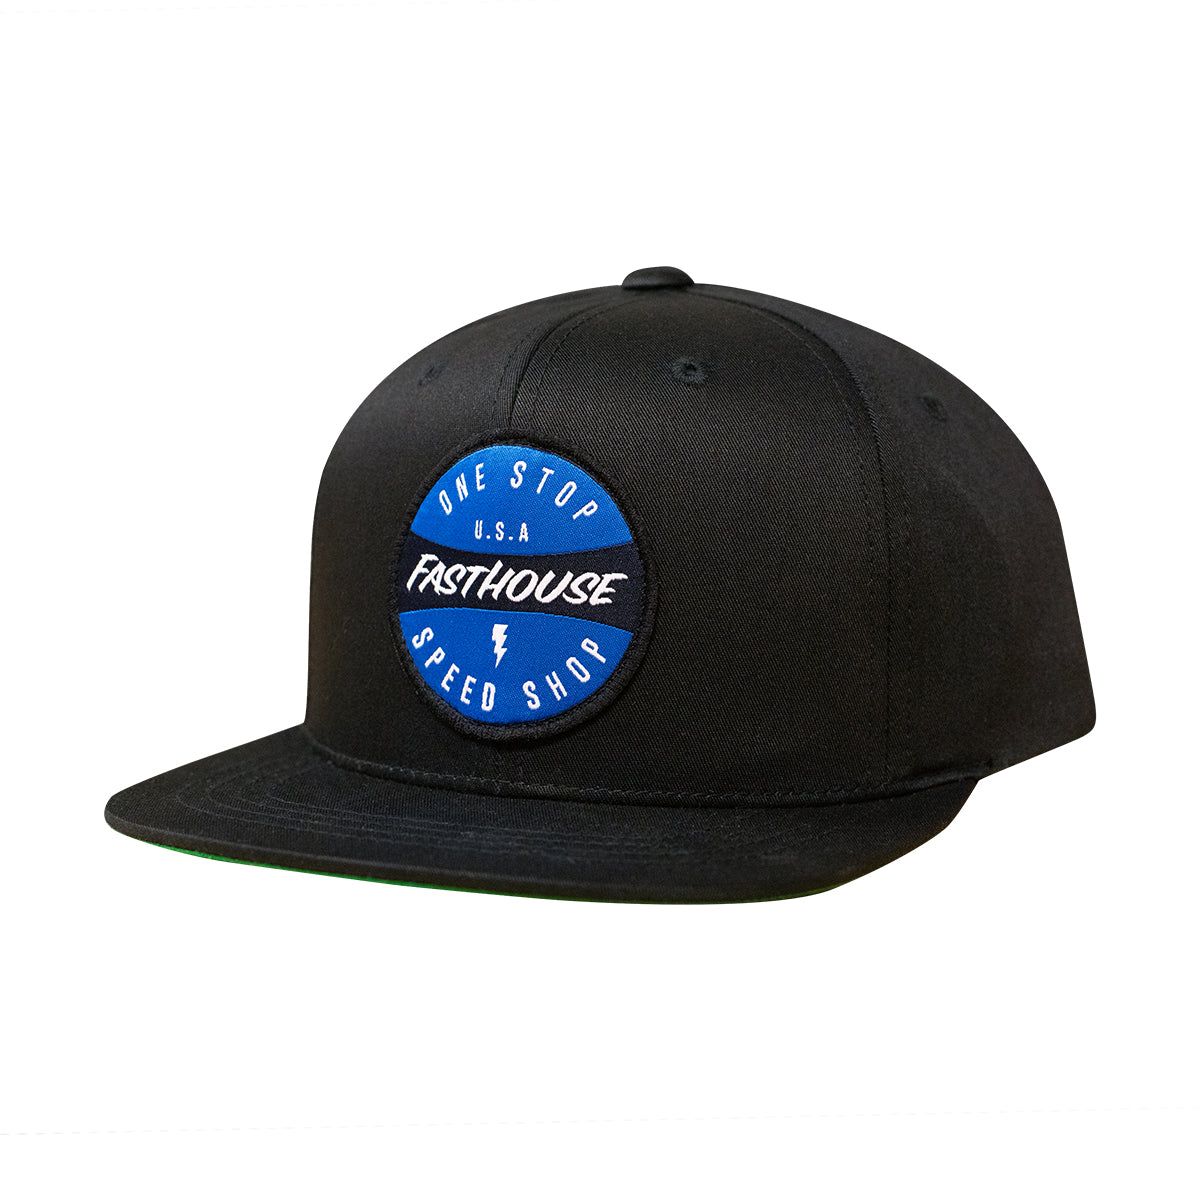 One Stop Youth Hat - Black